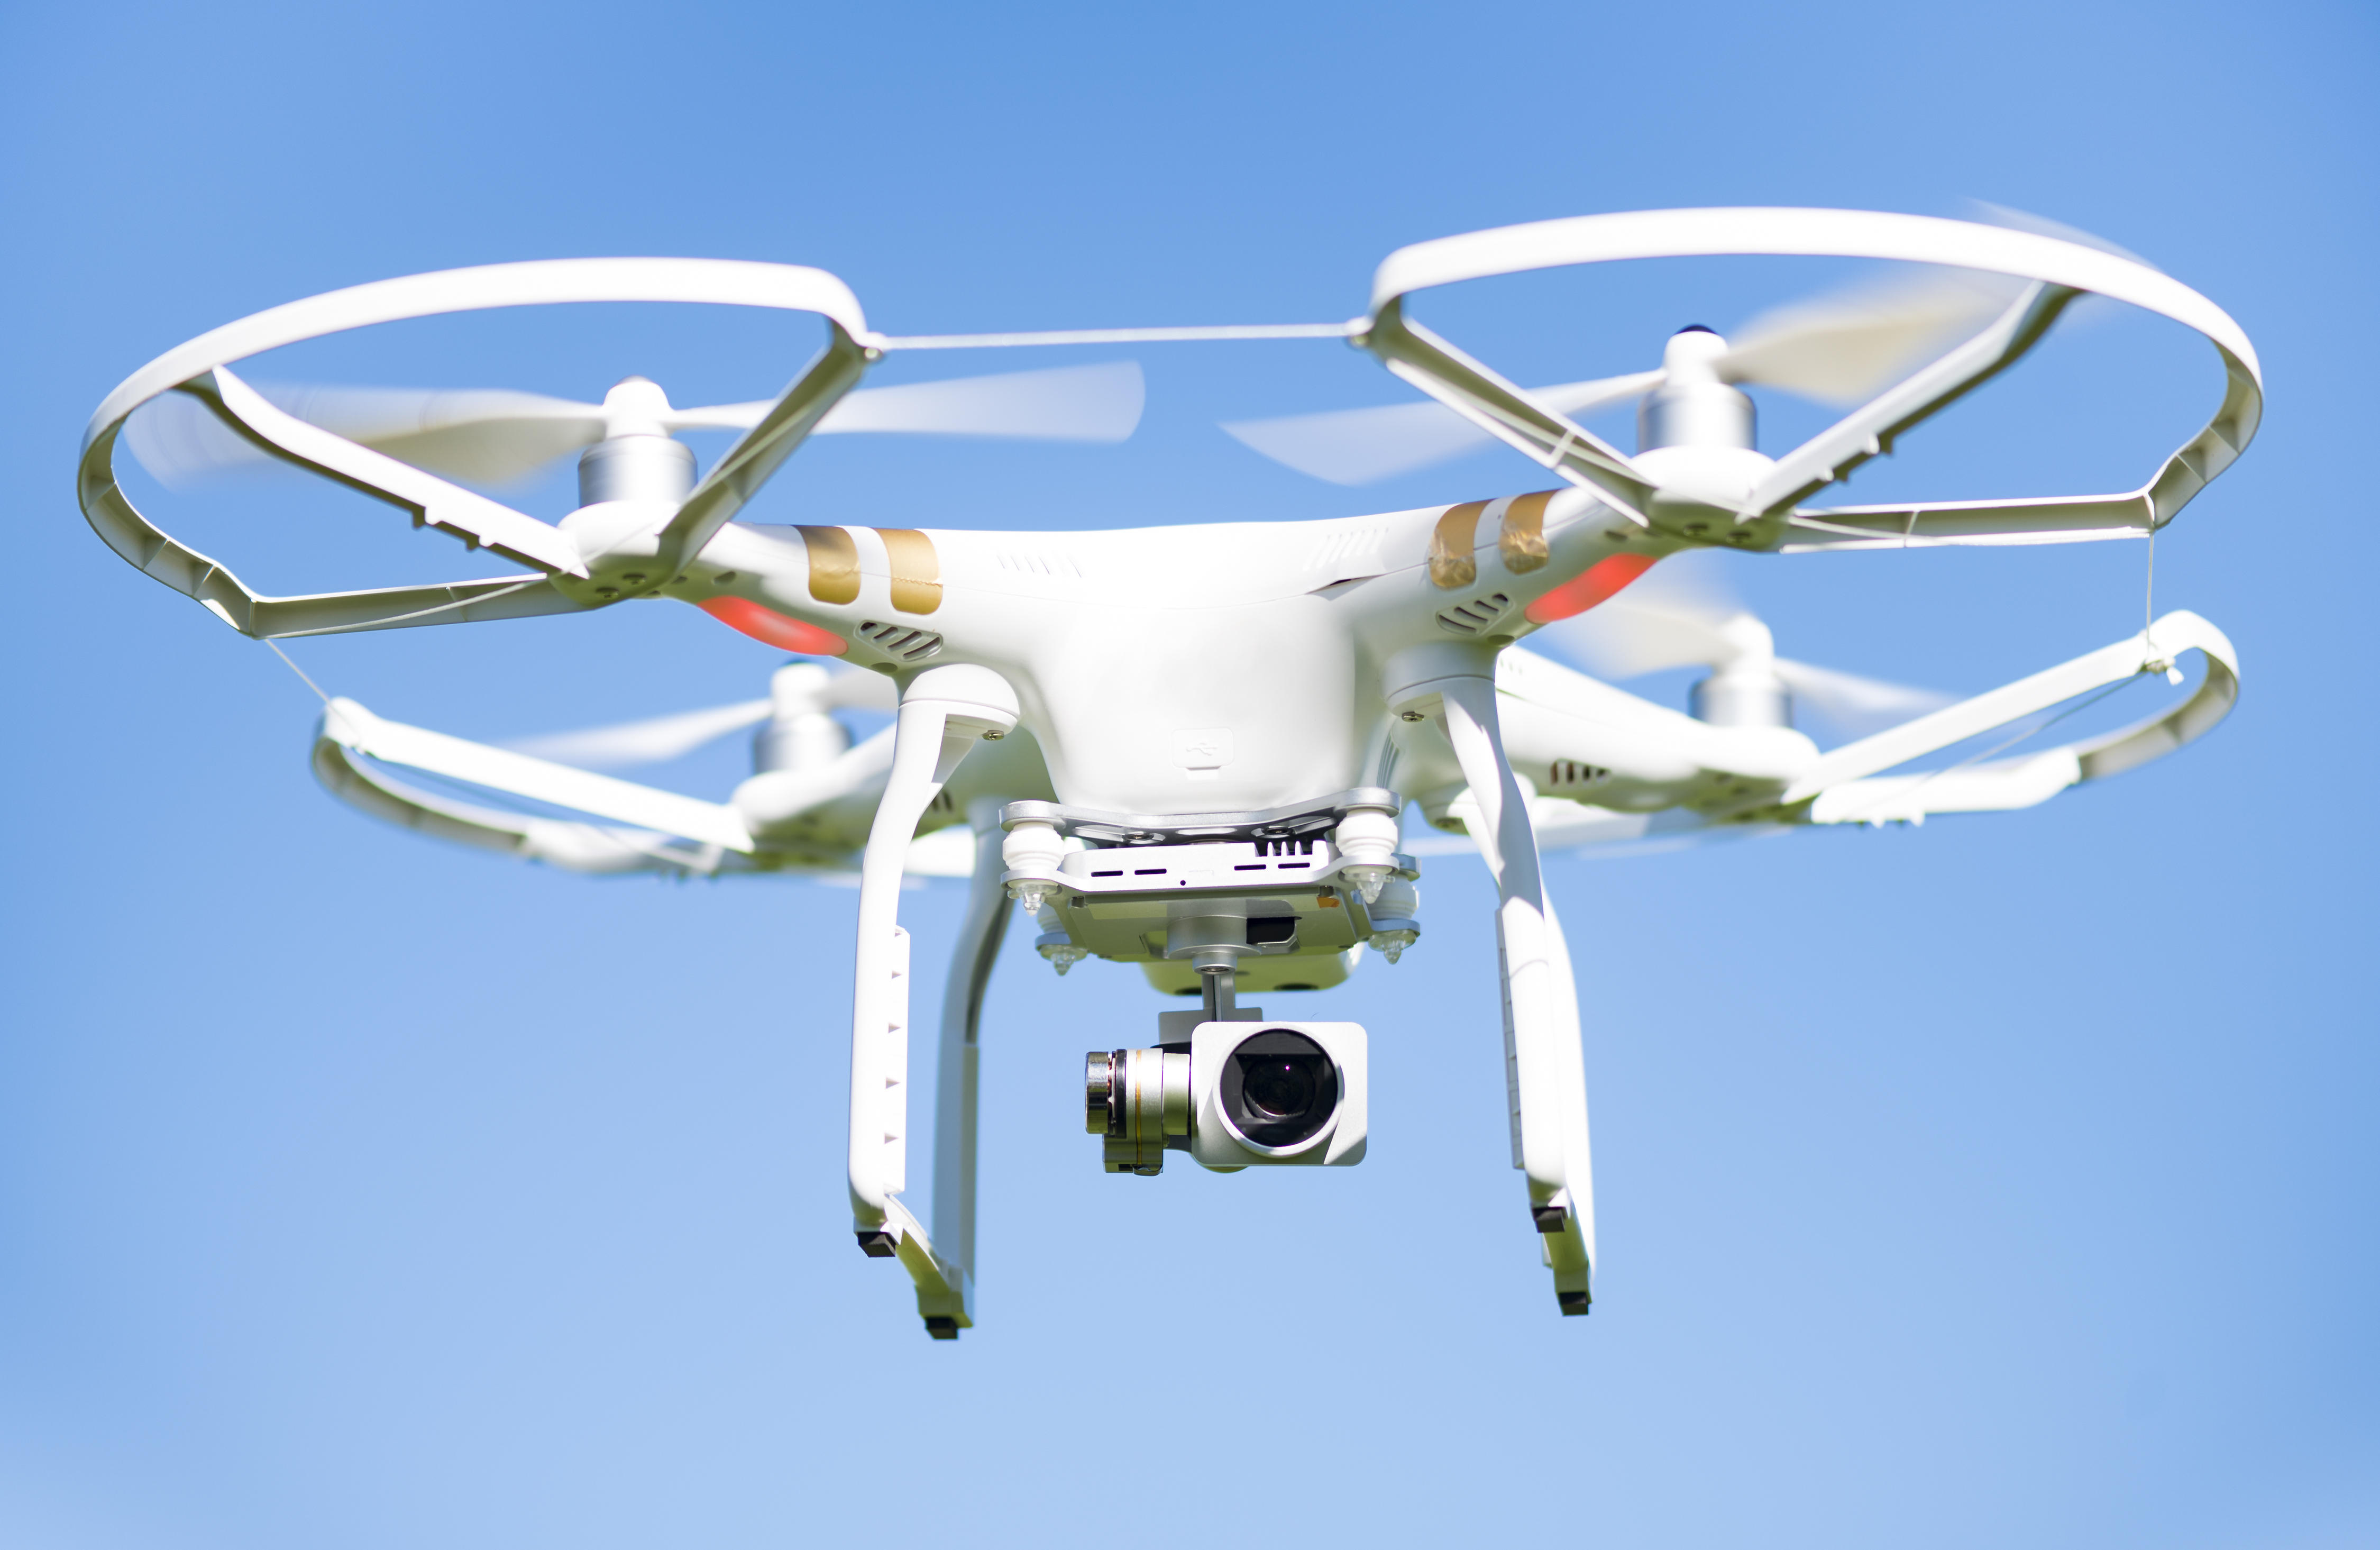 White drone flying high in the air, these unmanned aerial